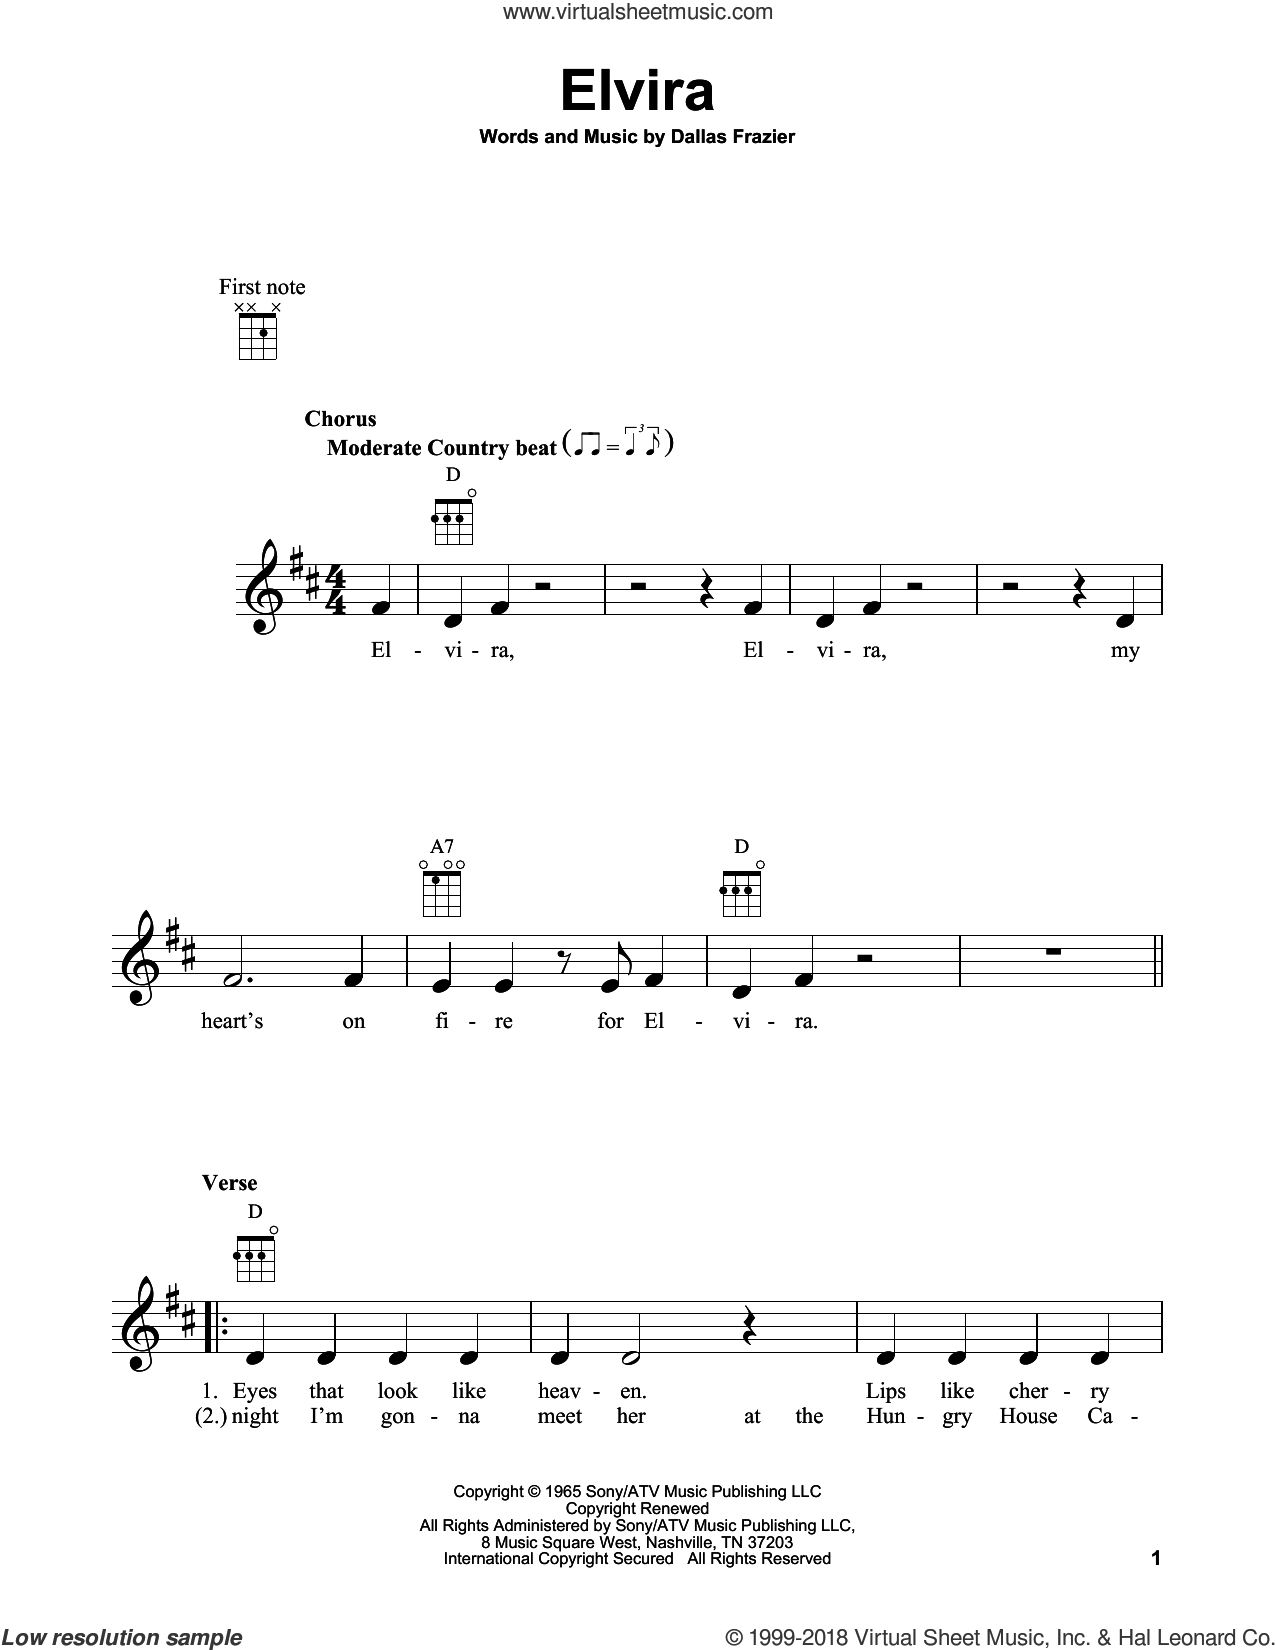 Elvira sheet music for ukulele by Oak Ridge Boys and Dallas Frazier, intermediate skill level